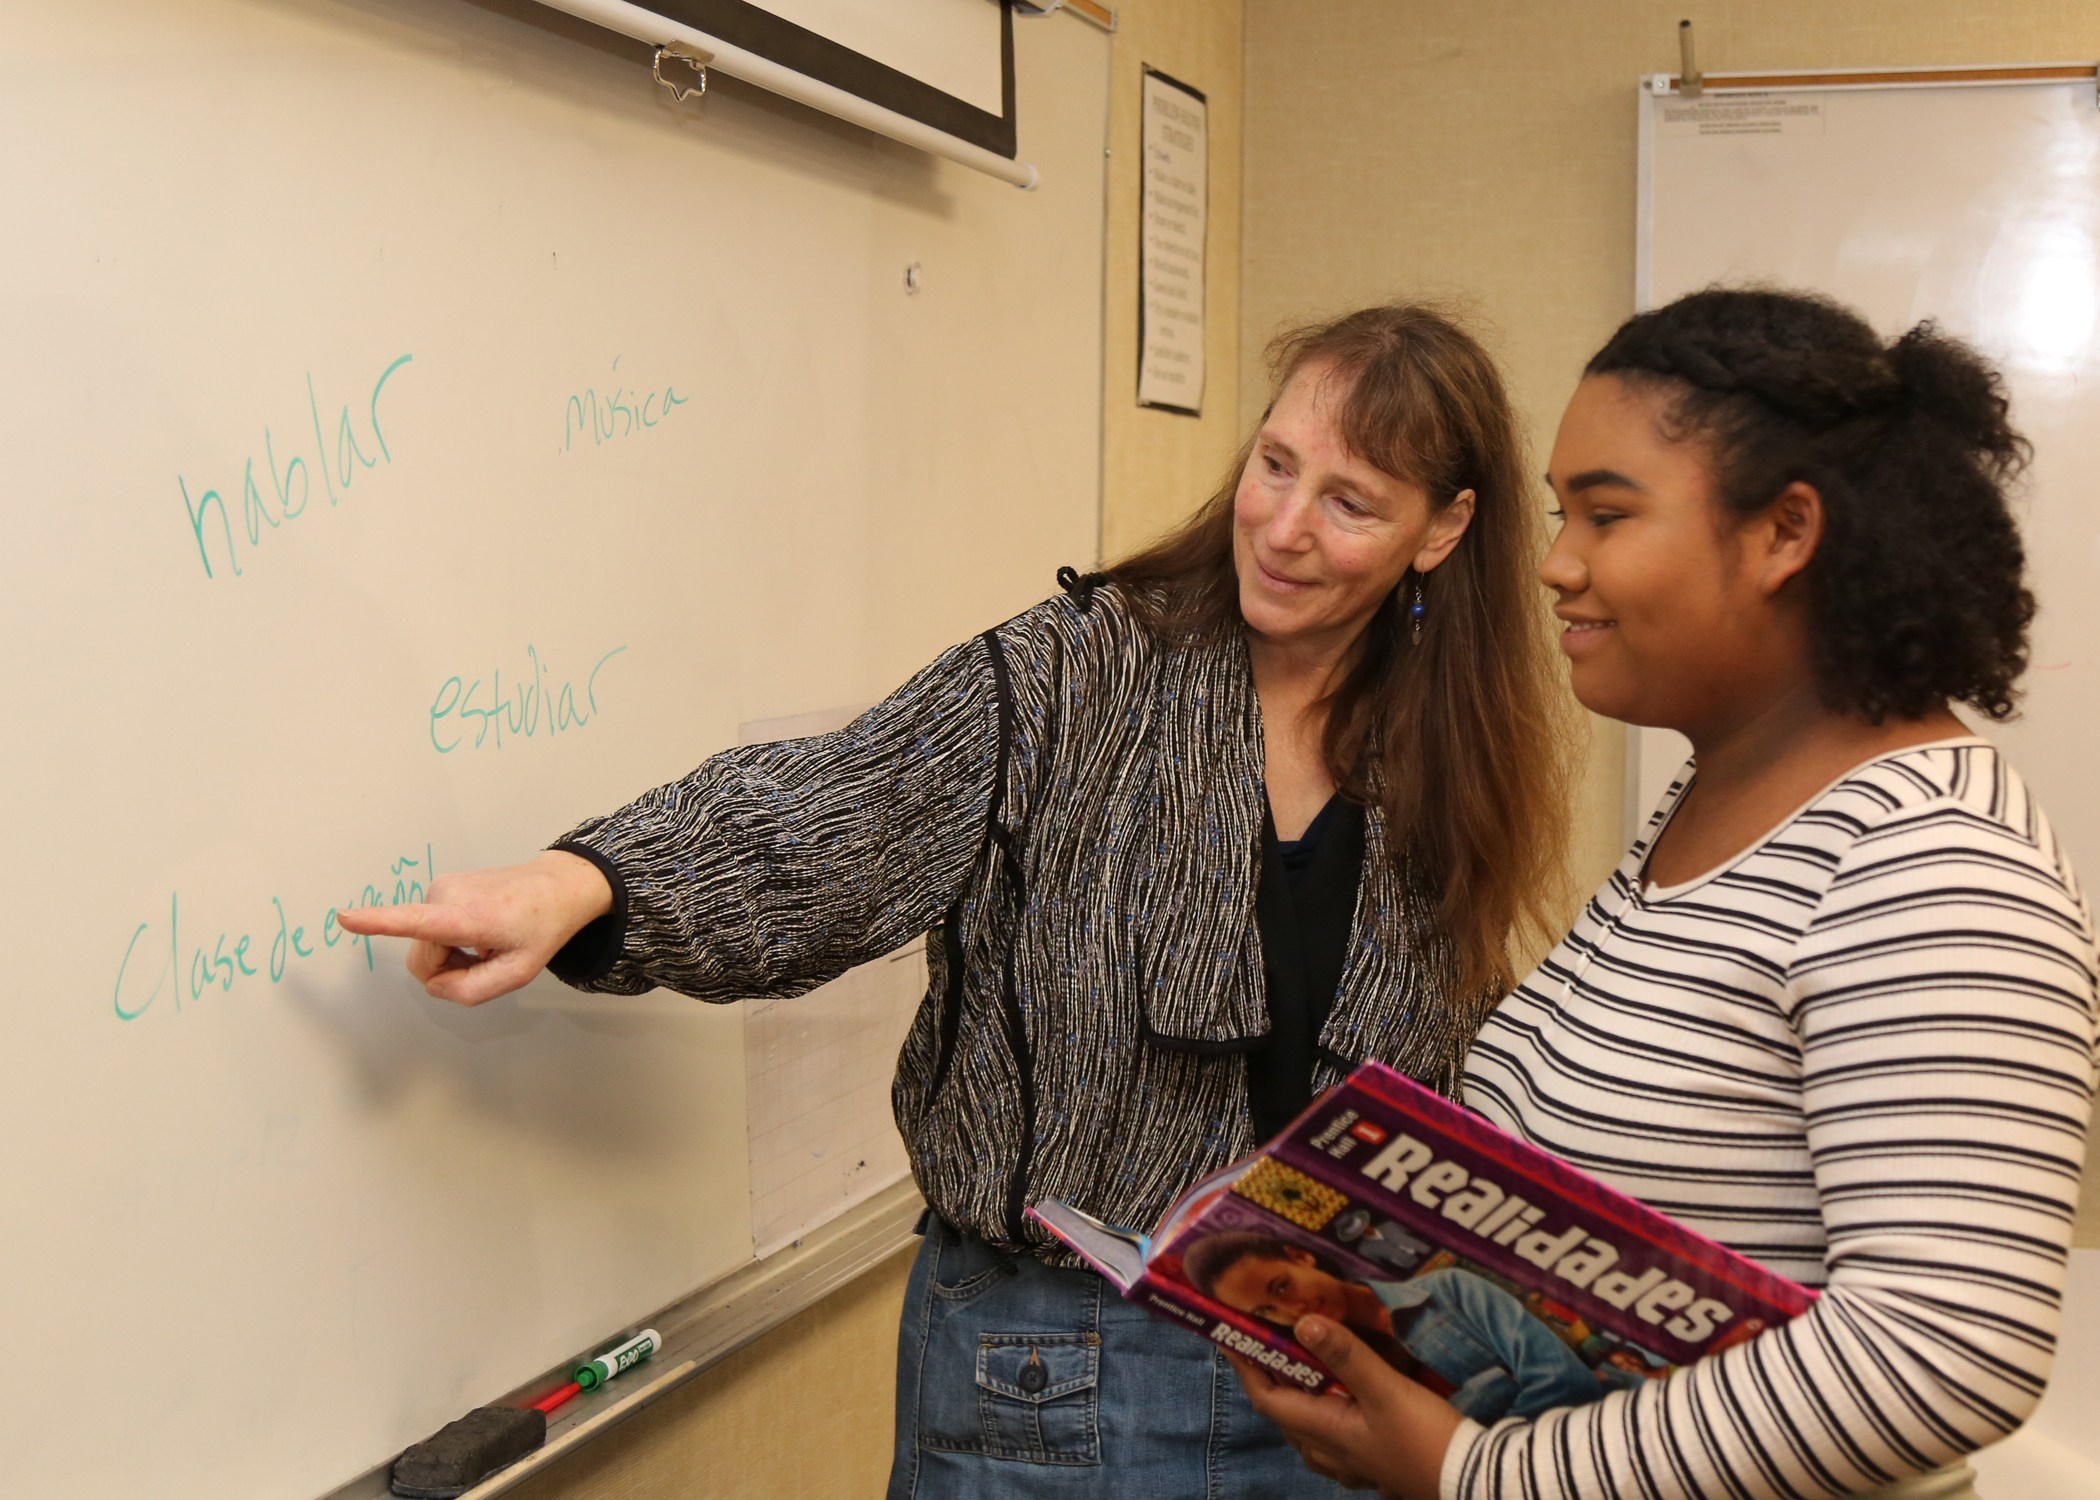 Spanish teacher with student at whiteboard